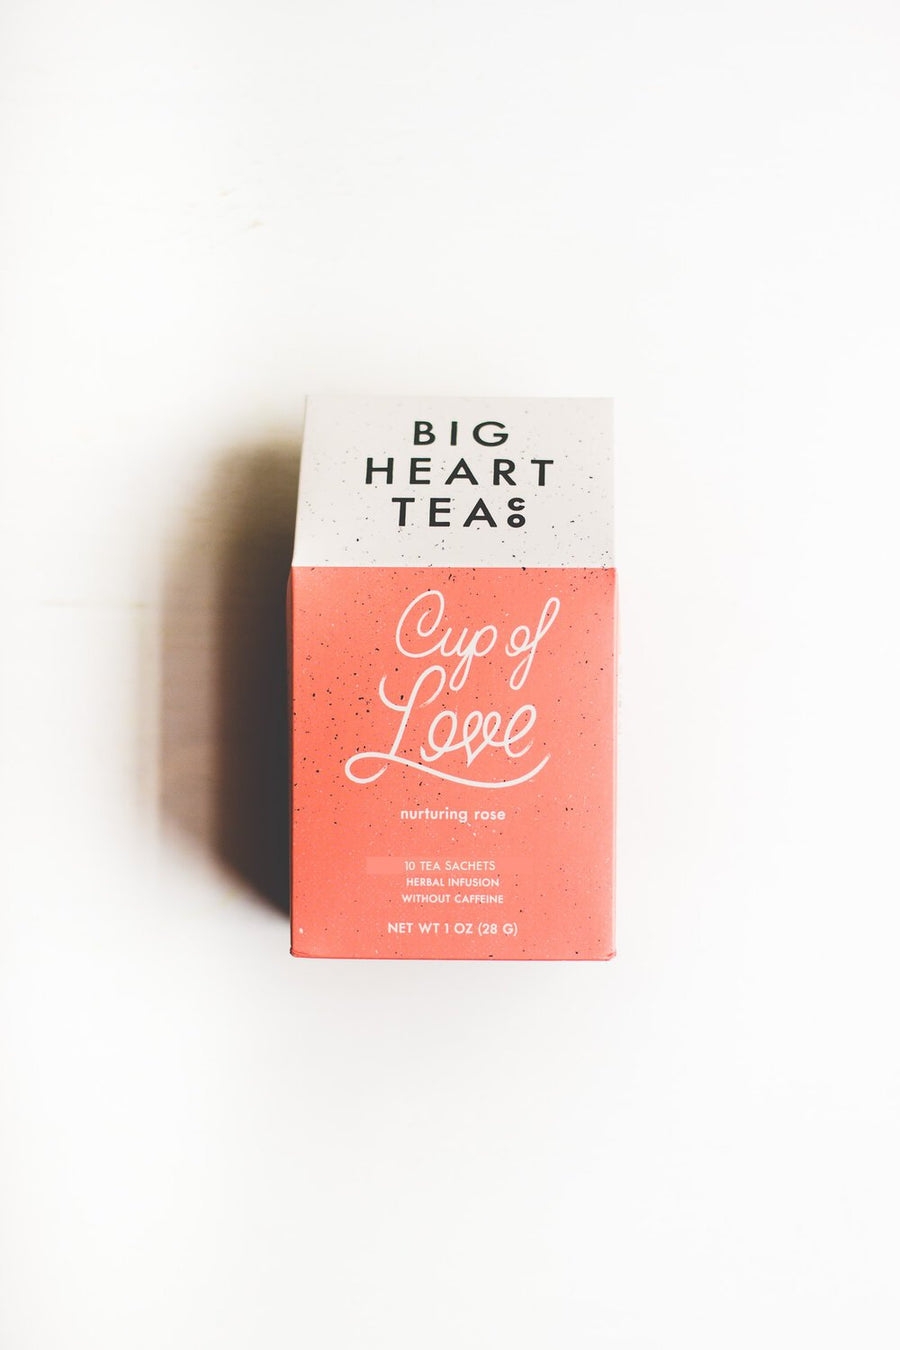 Cup of Love Tea-Big Heart Tea Co.-MONIKER GENERAL